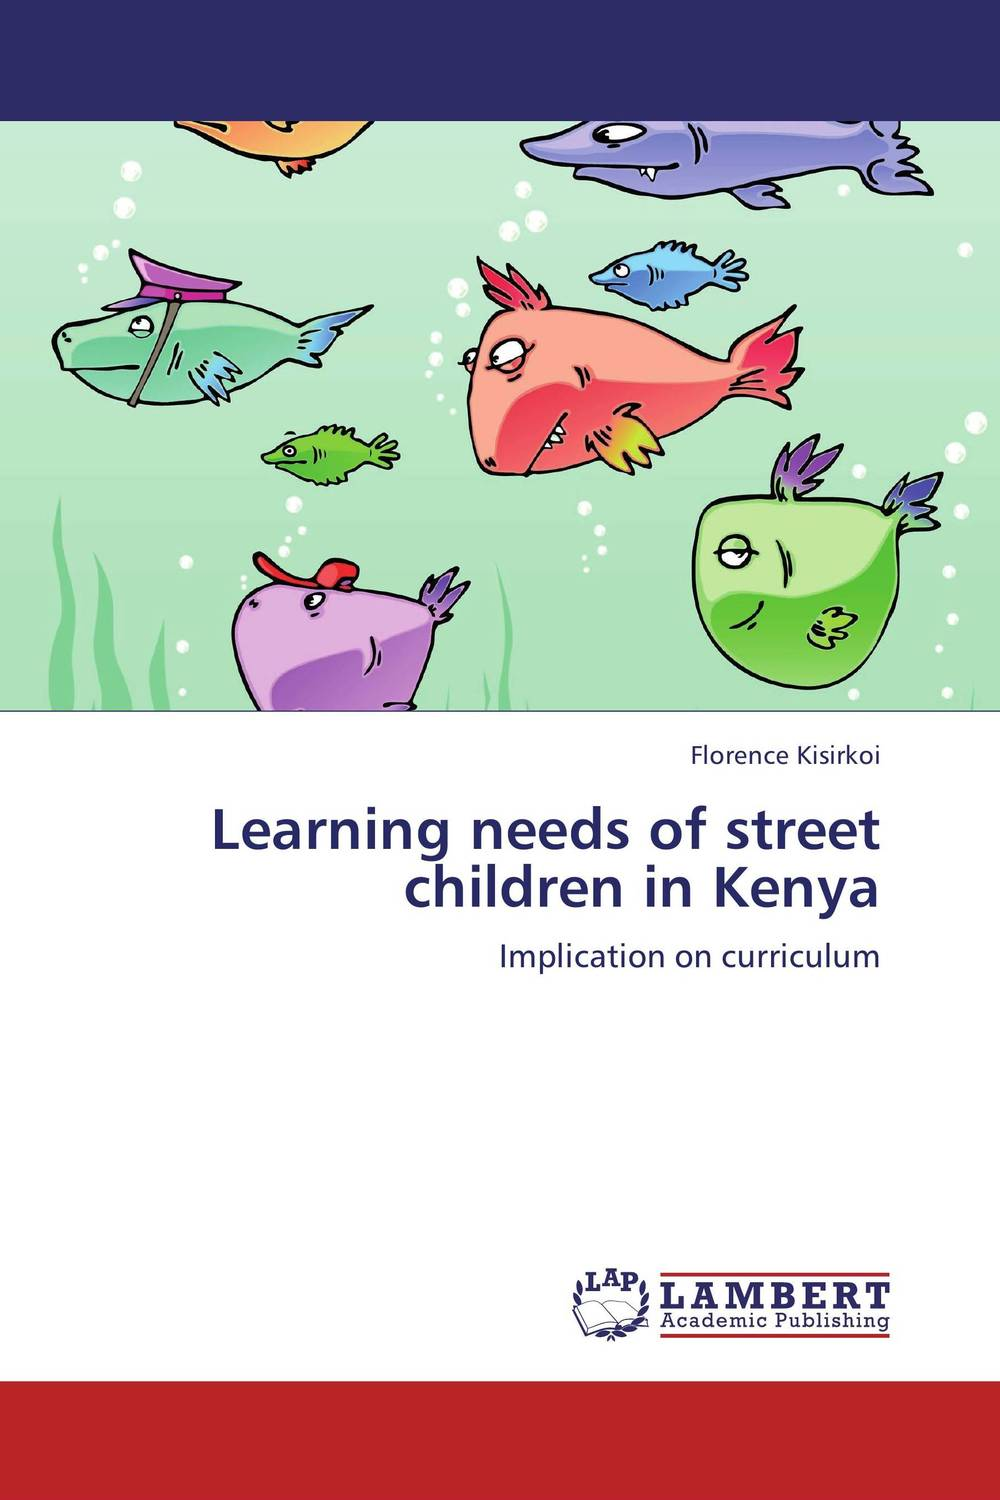 Learning needs of street children in Kenya florence kisirkoi learning needs of street children in kenya